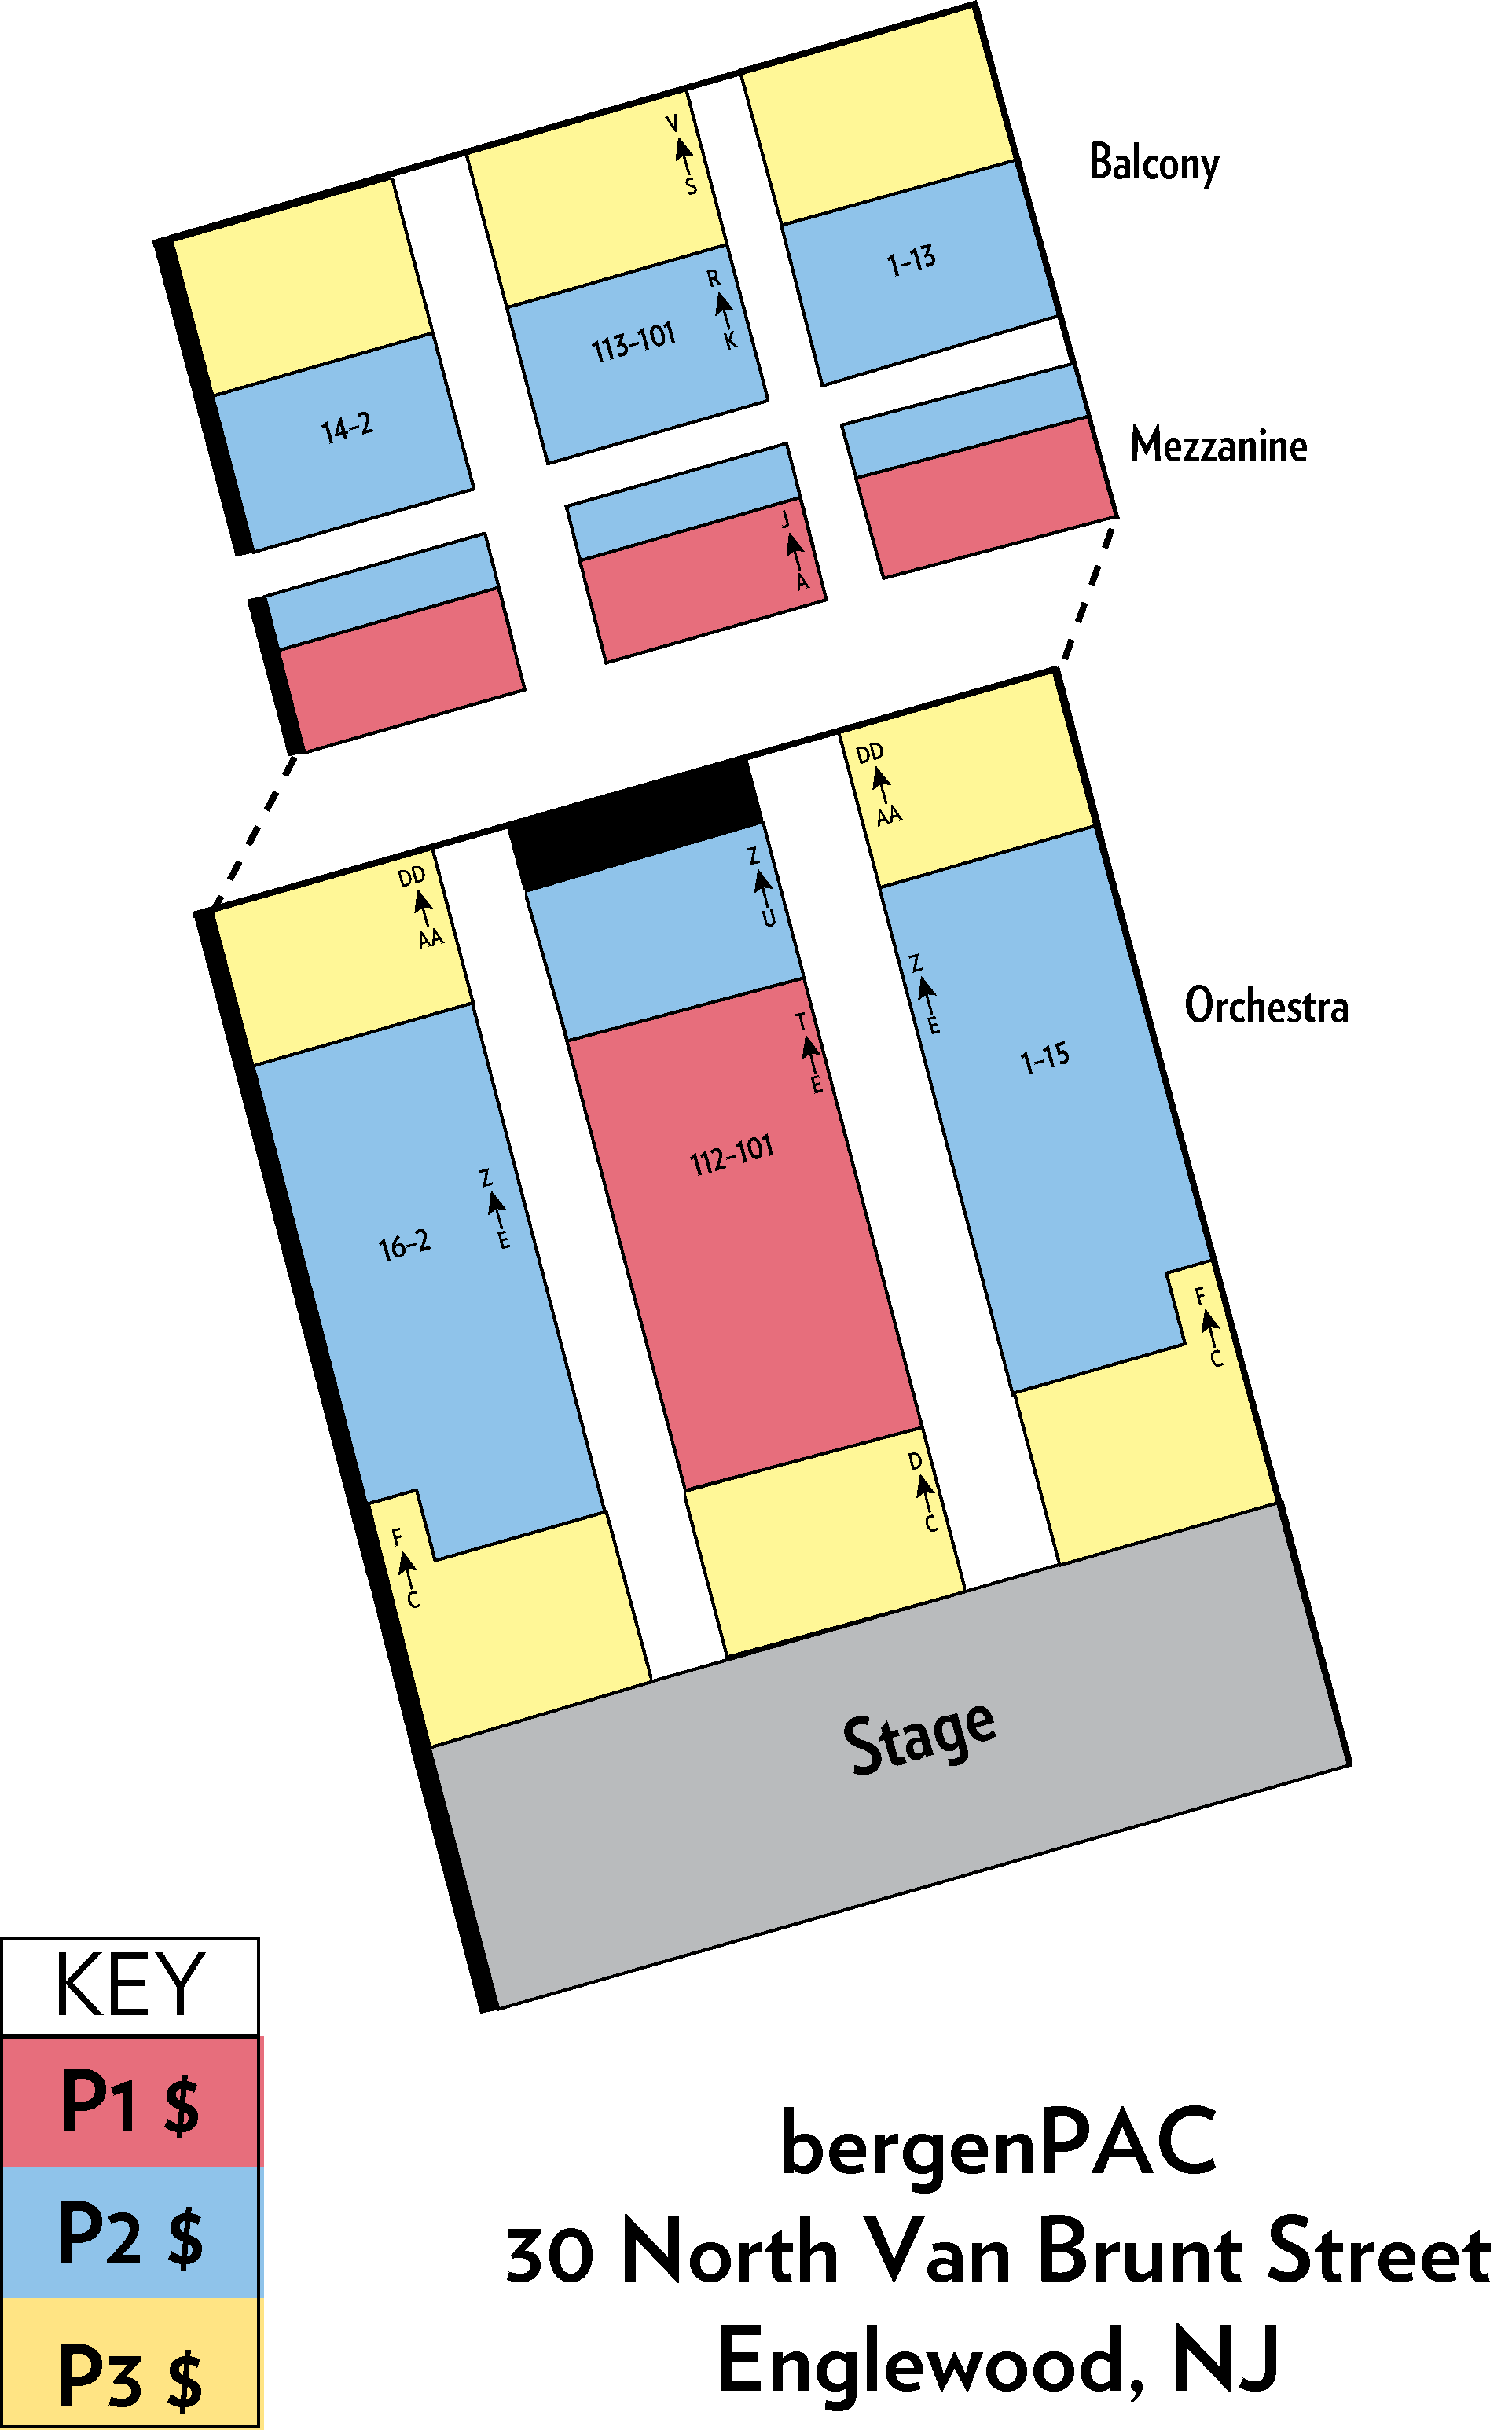 1617 bergenPAC venue map thumb